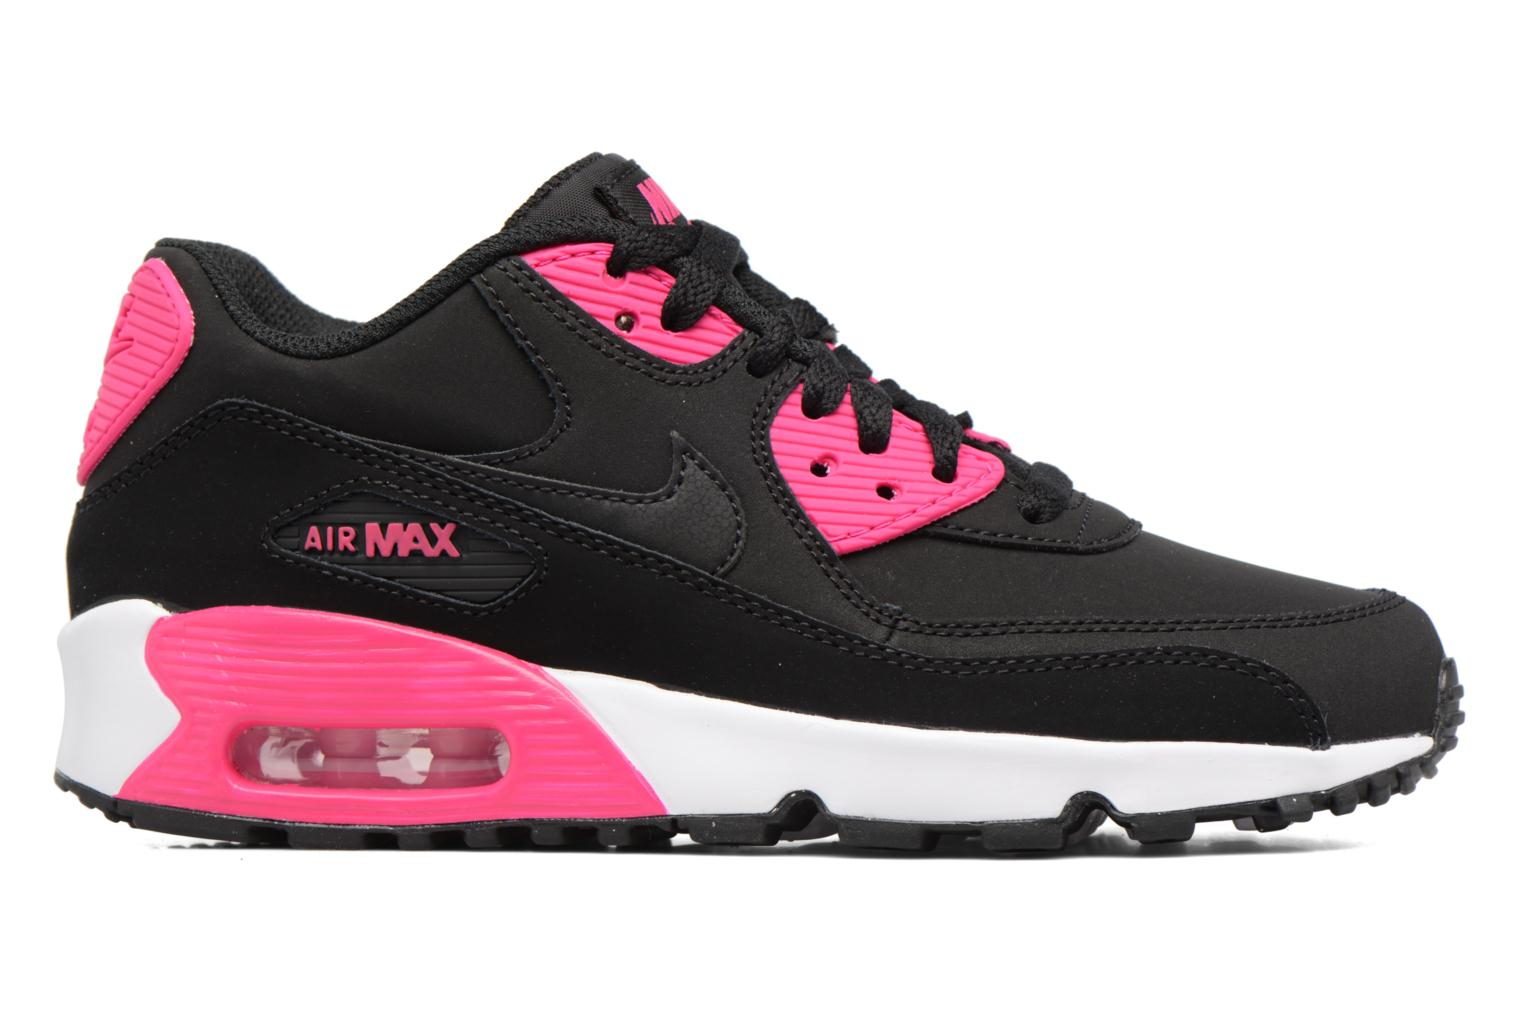 Barely Rose/Gunsmoke-White-Black Nike Nike Air Max 90 Ltr (Gs) (Rose)